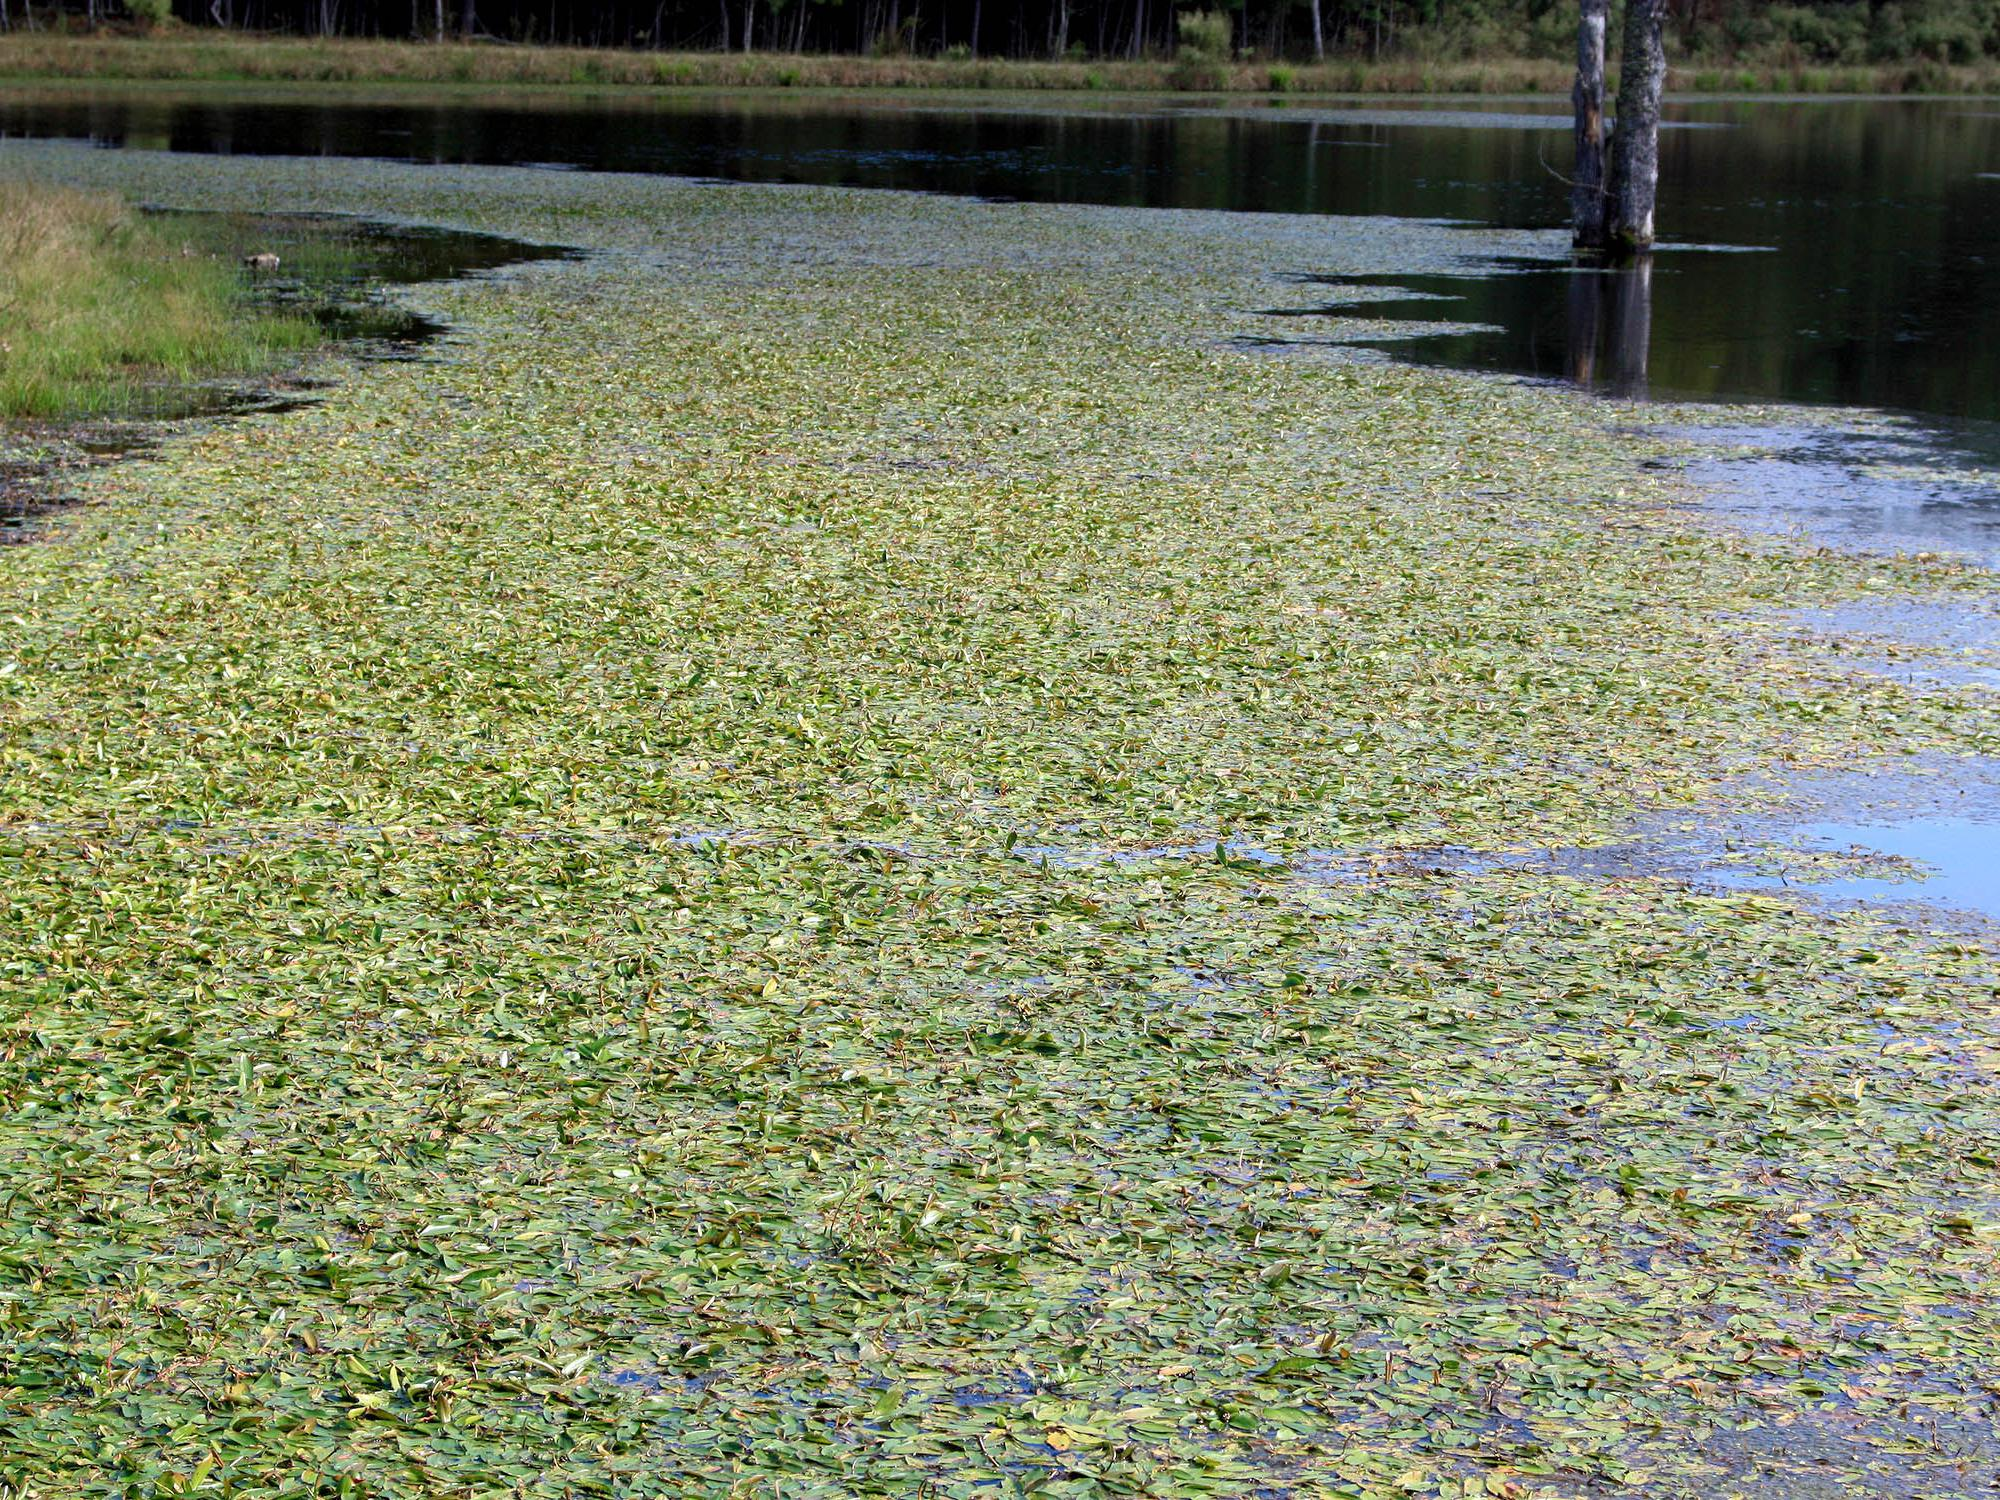 Prevention is the best way to control pond weeds, such as this American pondweed growing in Clay County in 2008, but physical, mechanical, biological and chemical control measures can be used once weeds become established. (File photo courtesy of Wes Neal)